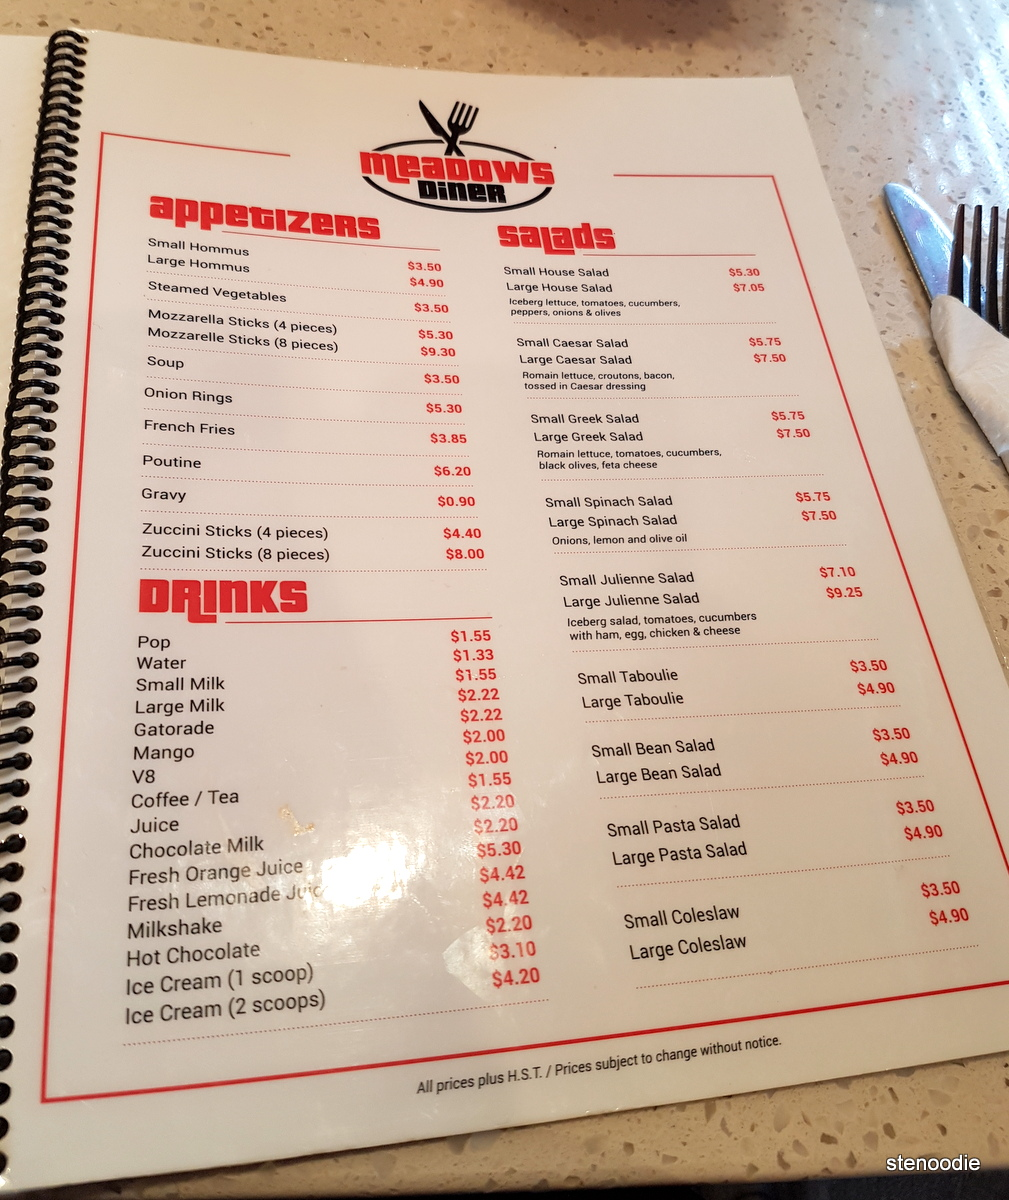 Meadows Diner menu and prices